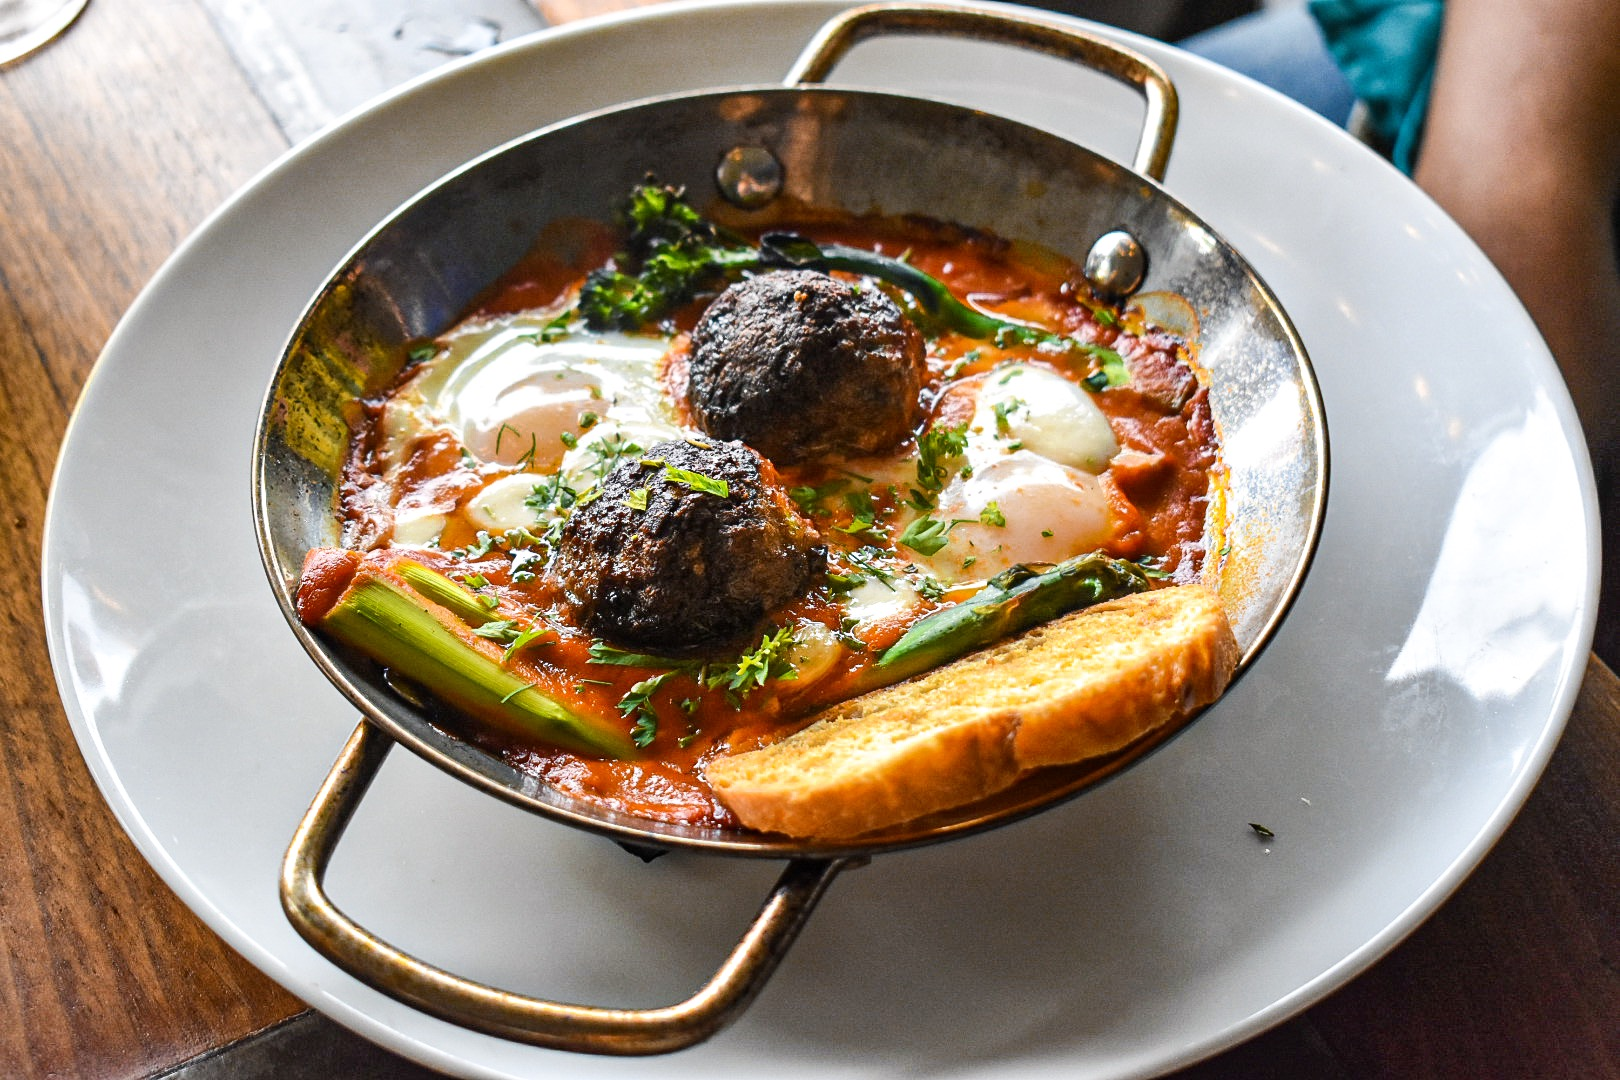 imsideout brunch meatballs 4th of july guide brunchfaced bloody mary obsessed.jpg